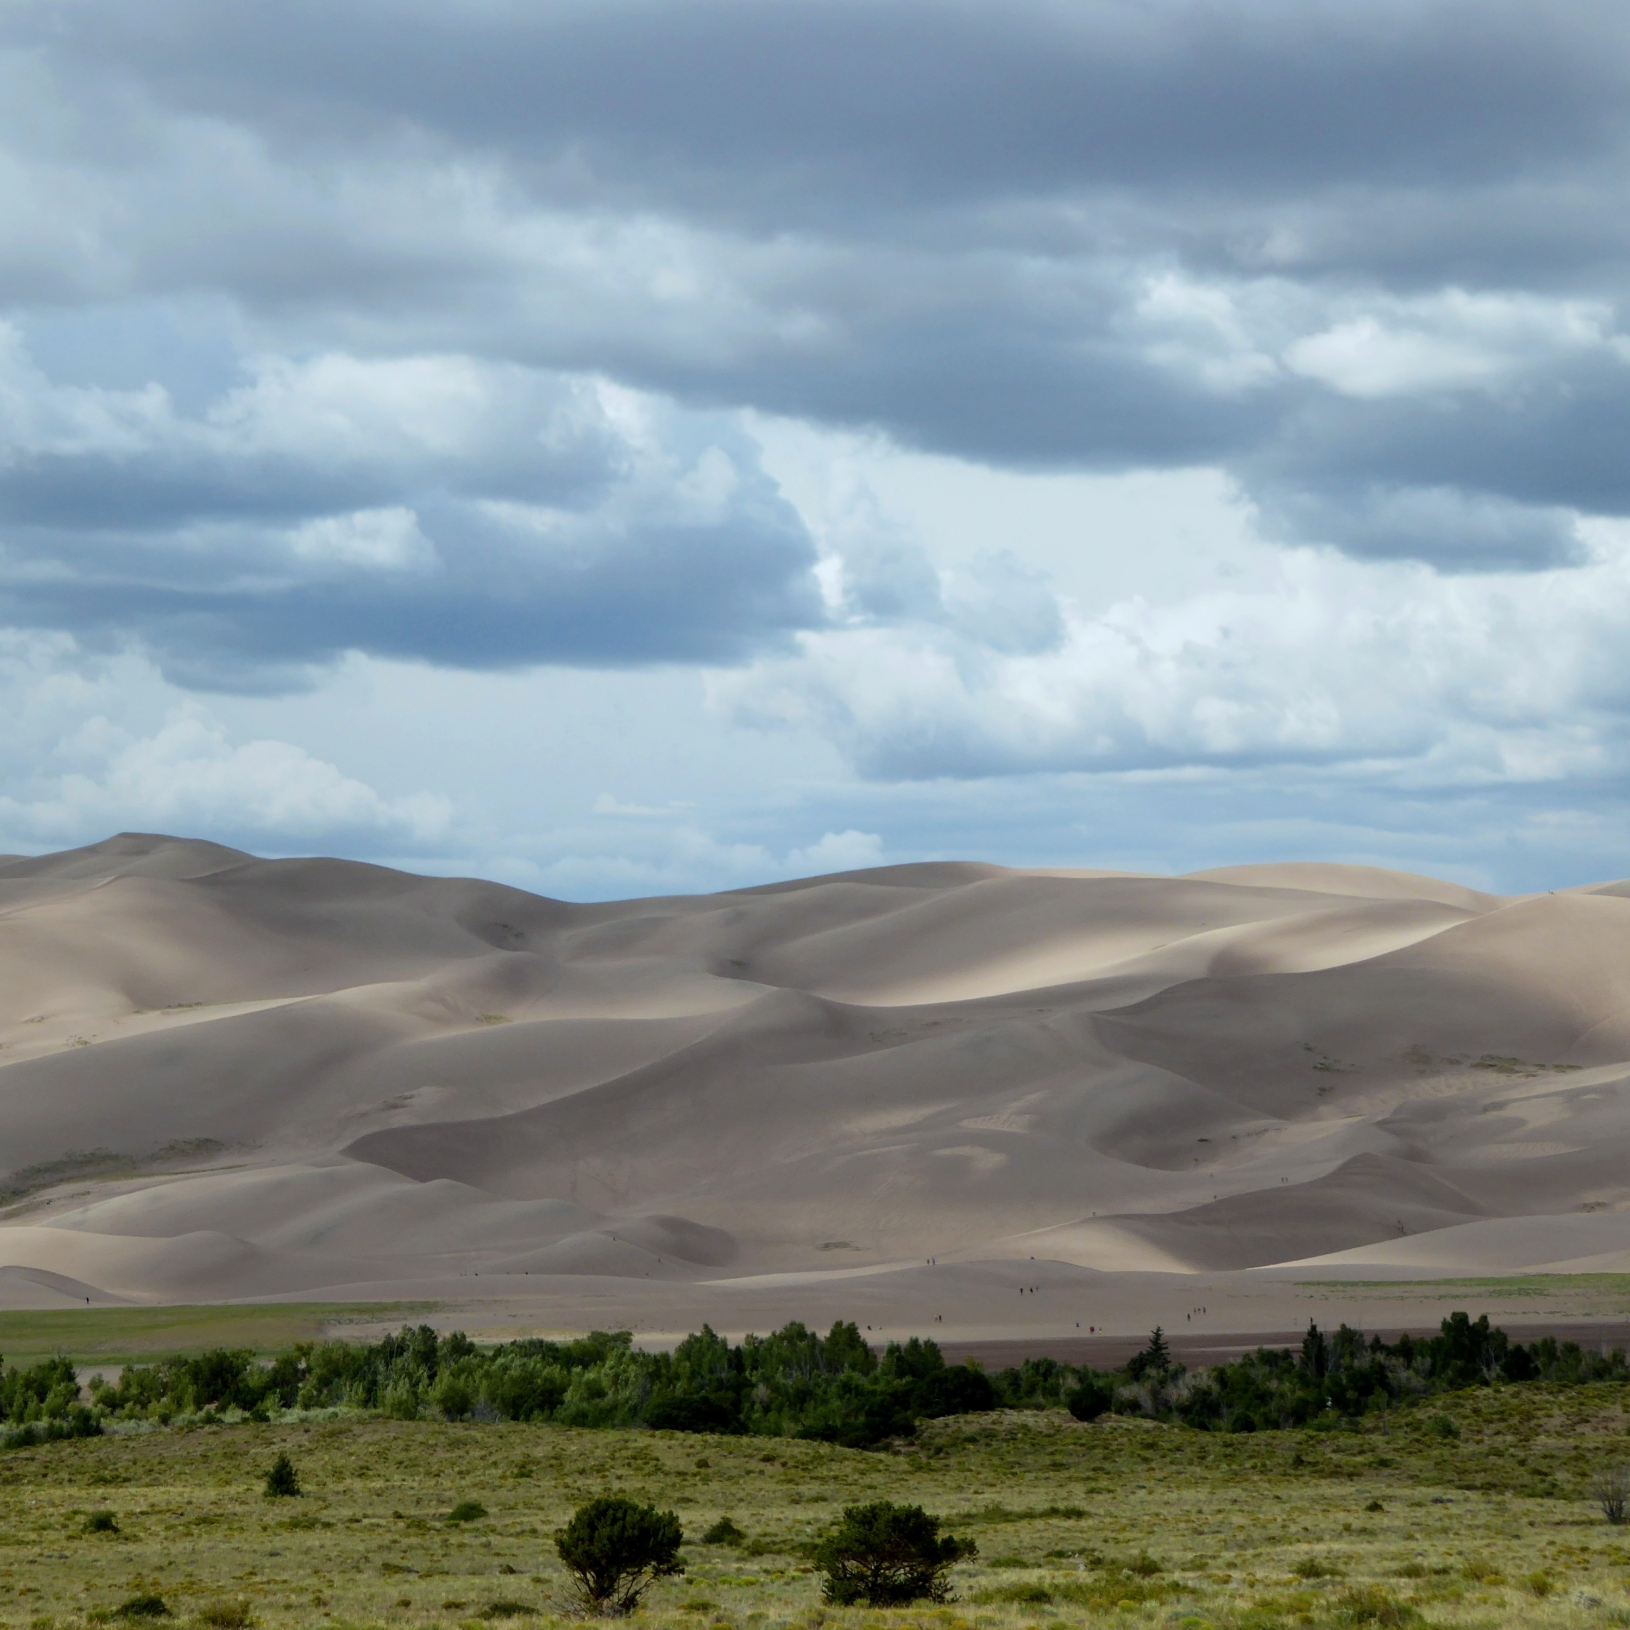 Sun & clouds over Great Sand Dunes National Park